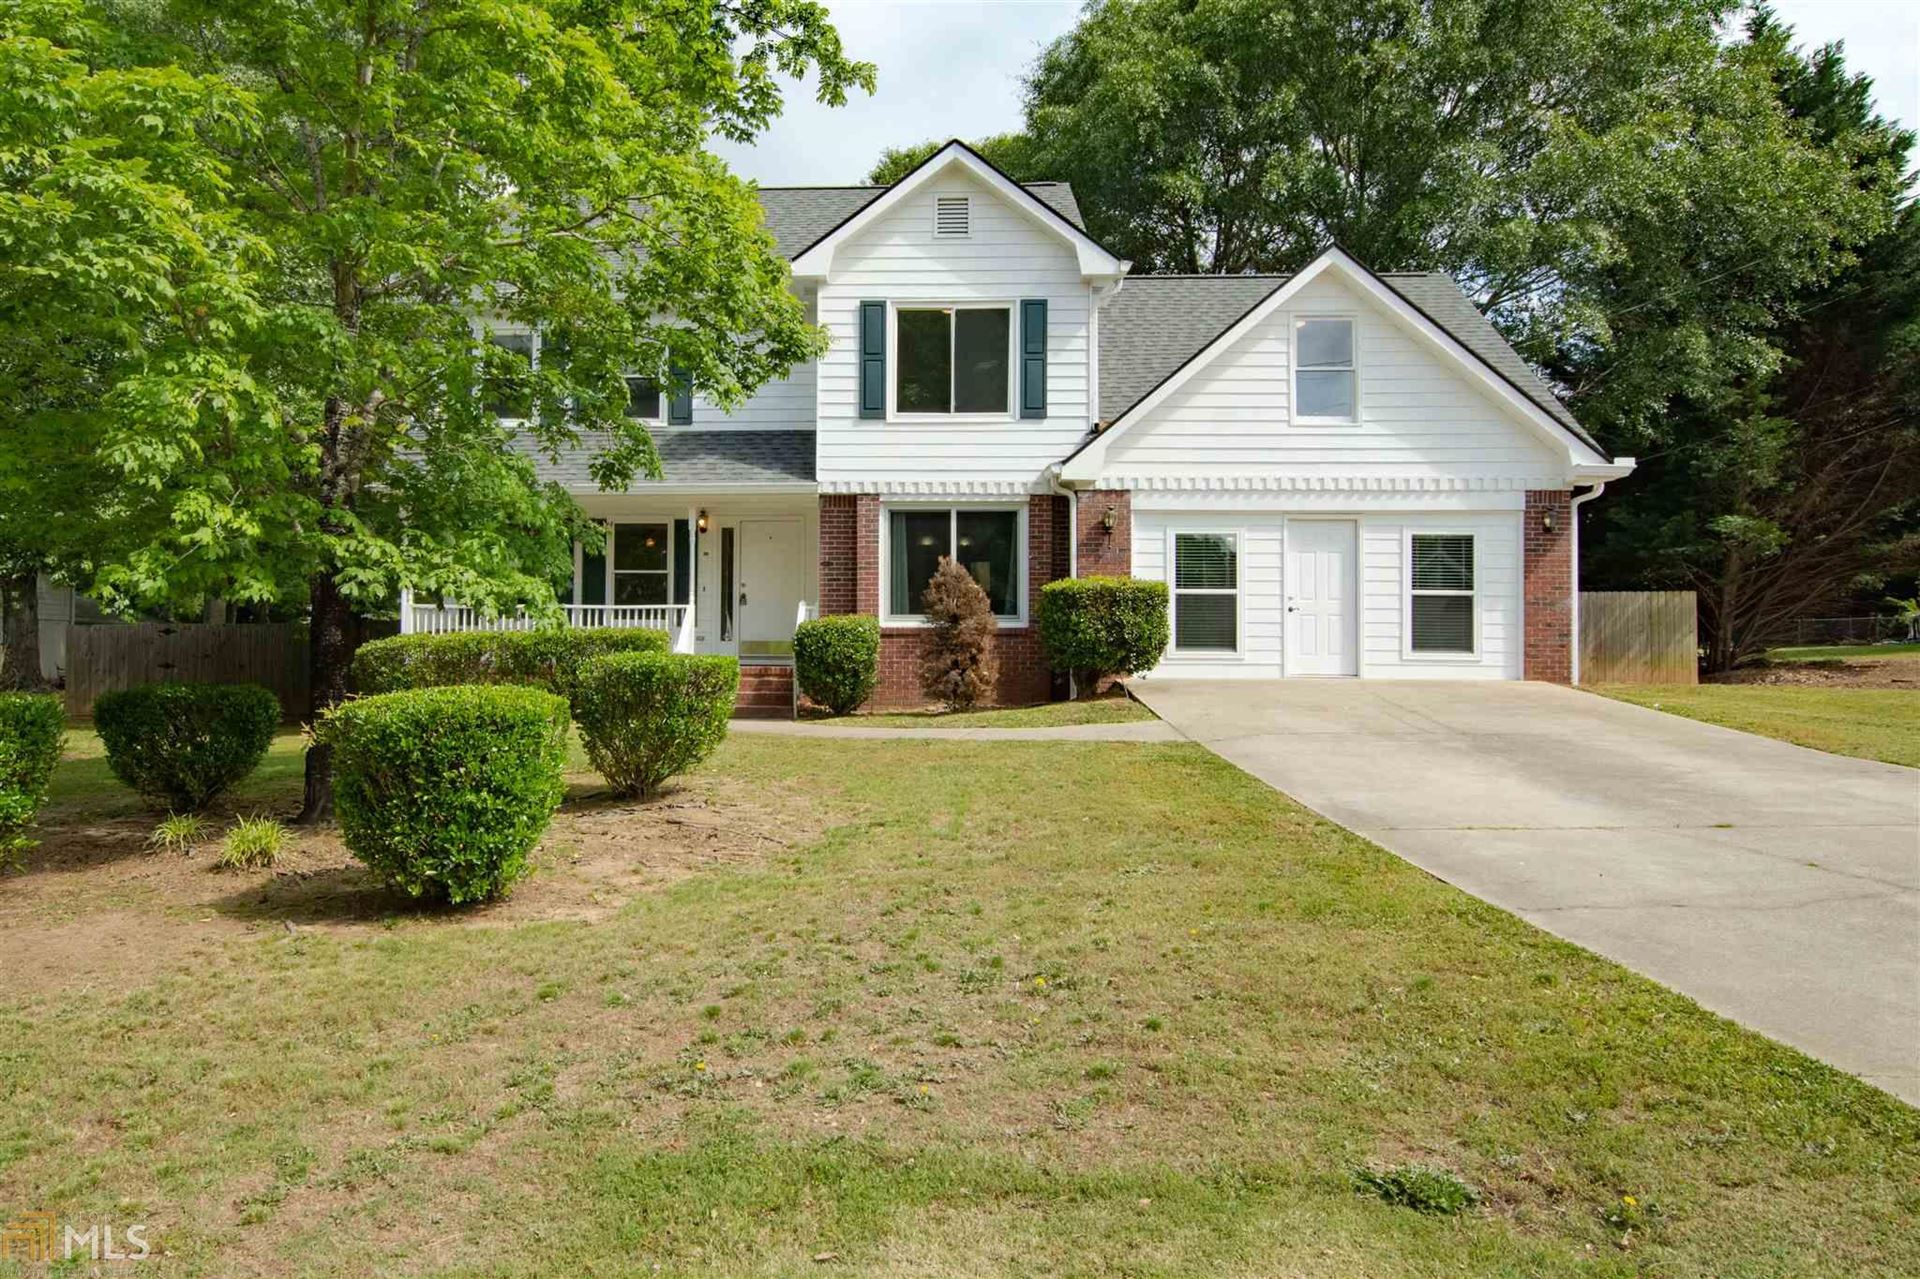 25 Ashton Pl, Covington, GA 30016 - #: 8790350